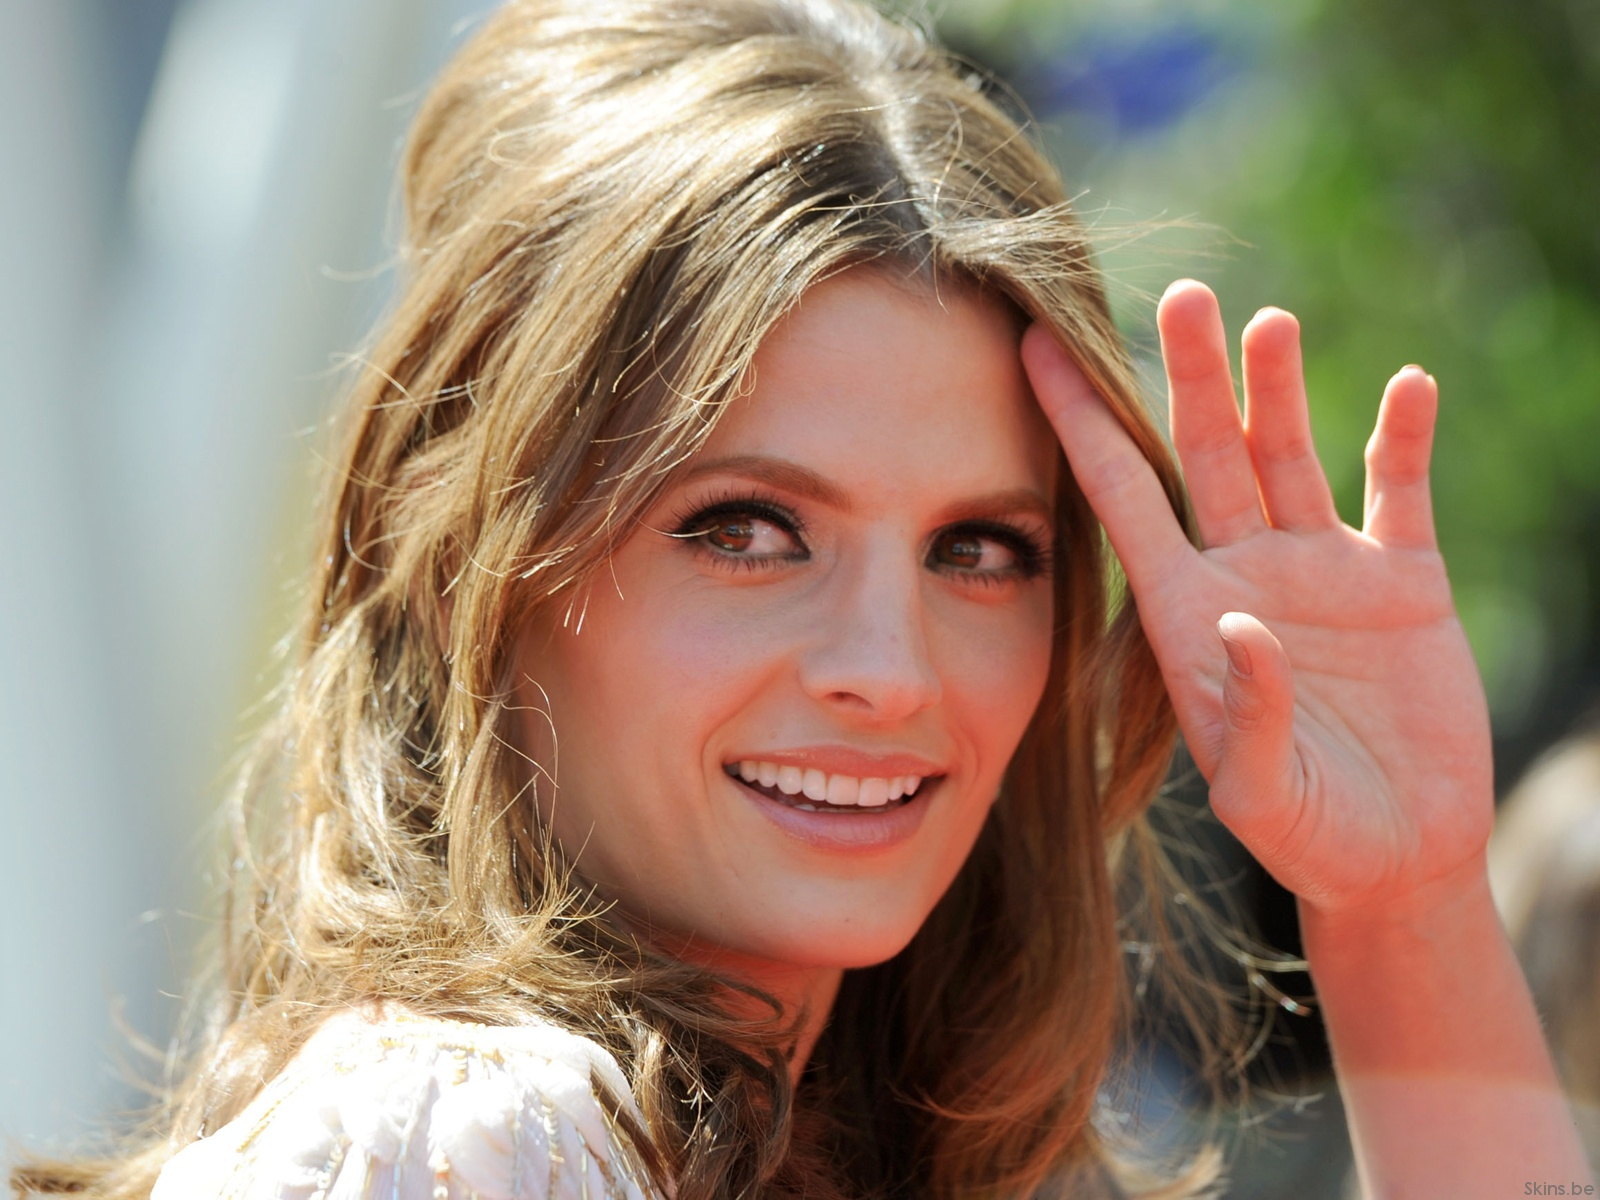 Stana Katic 2018: Boyfriend, tattoos, smoking & body ...